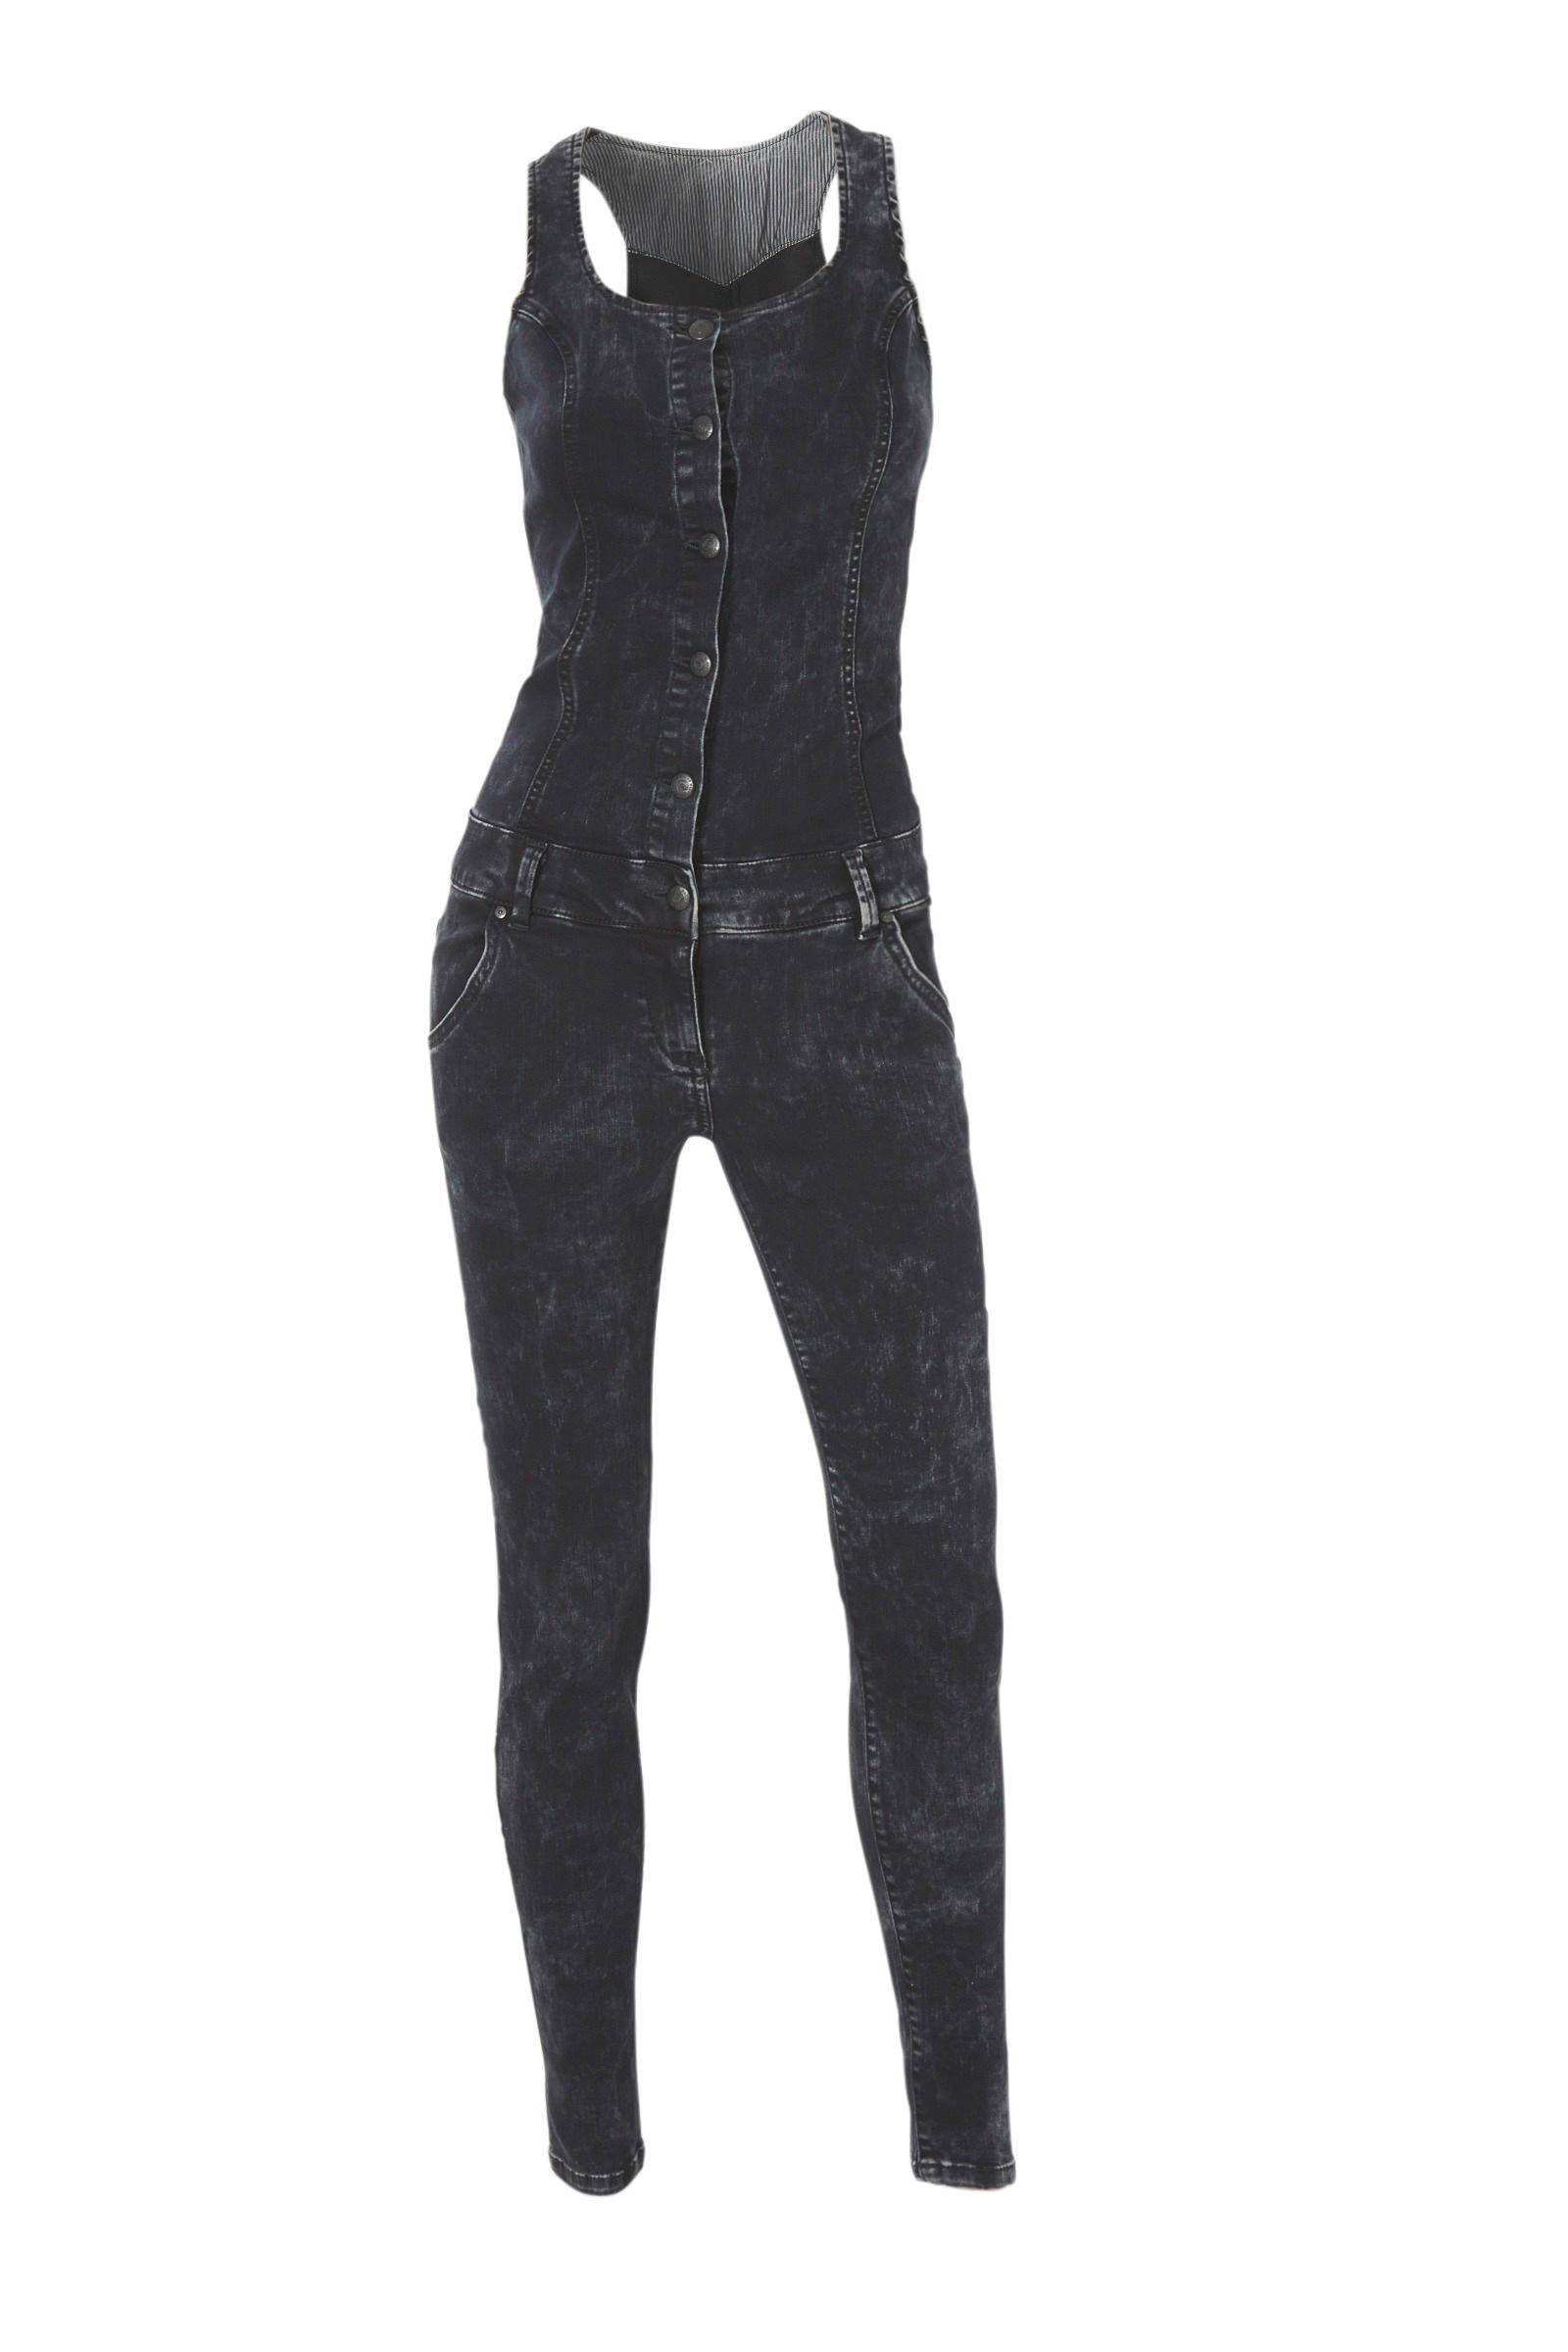 sports shoes 9dade 9ae0f Jumpsuit Jumpsuit Jeans Damen Jeans Overall Damen Overall ...